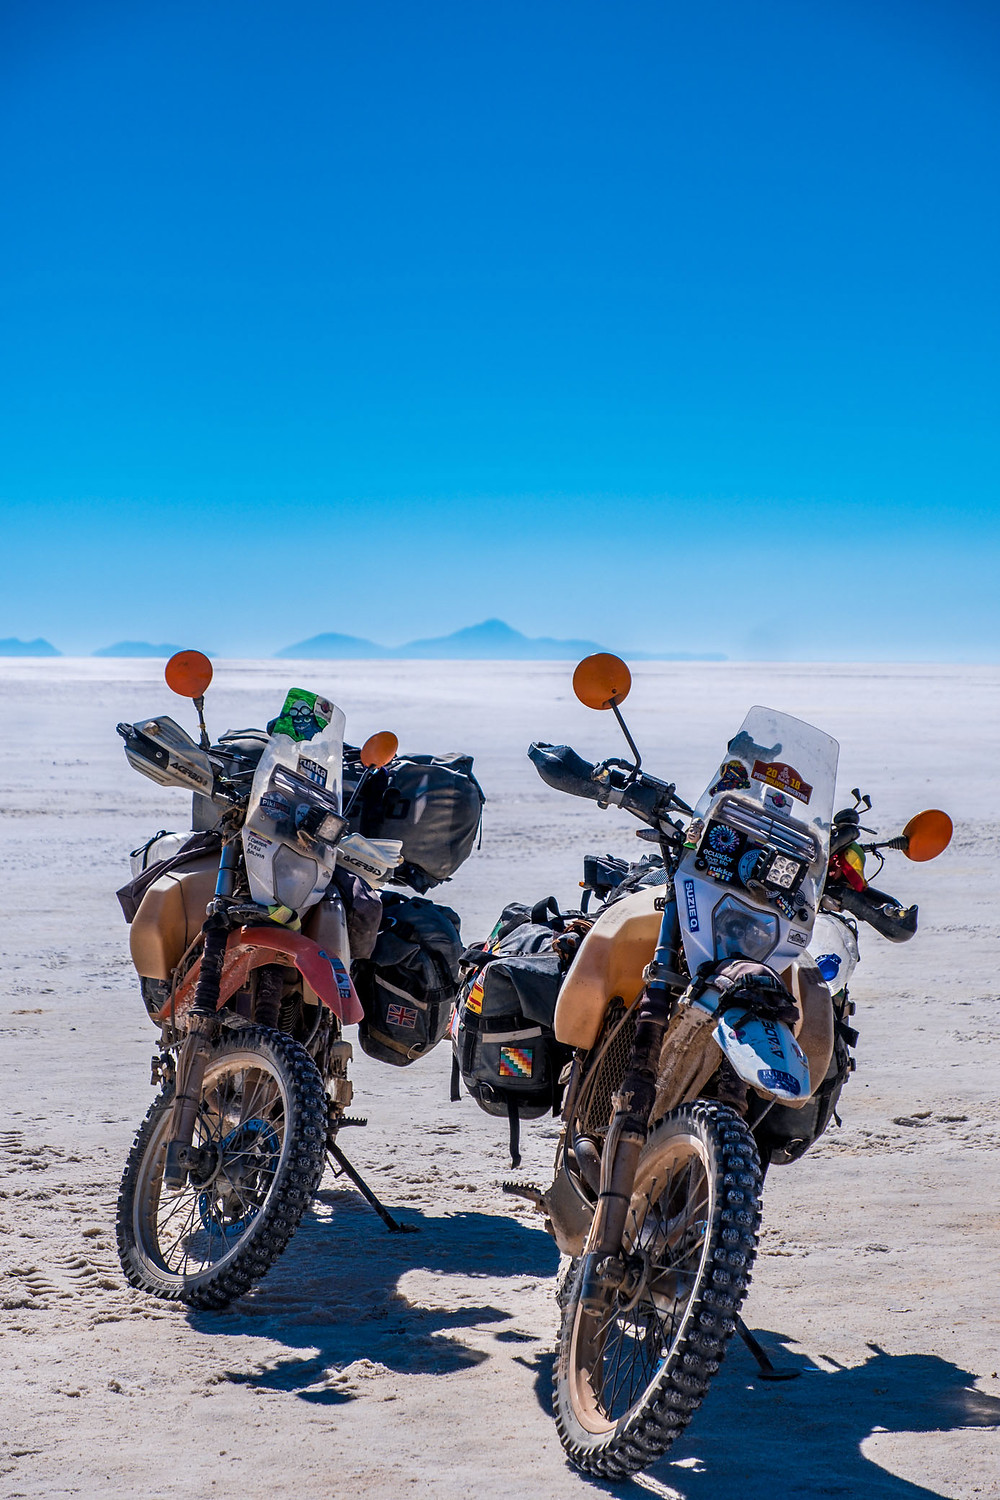 The bikes chilling out on the Bolivia Salt Flats - AvVida.co.uk